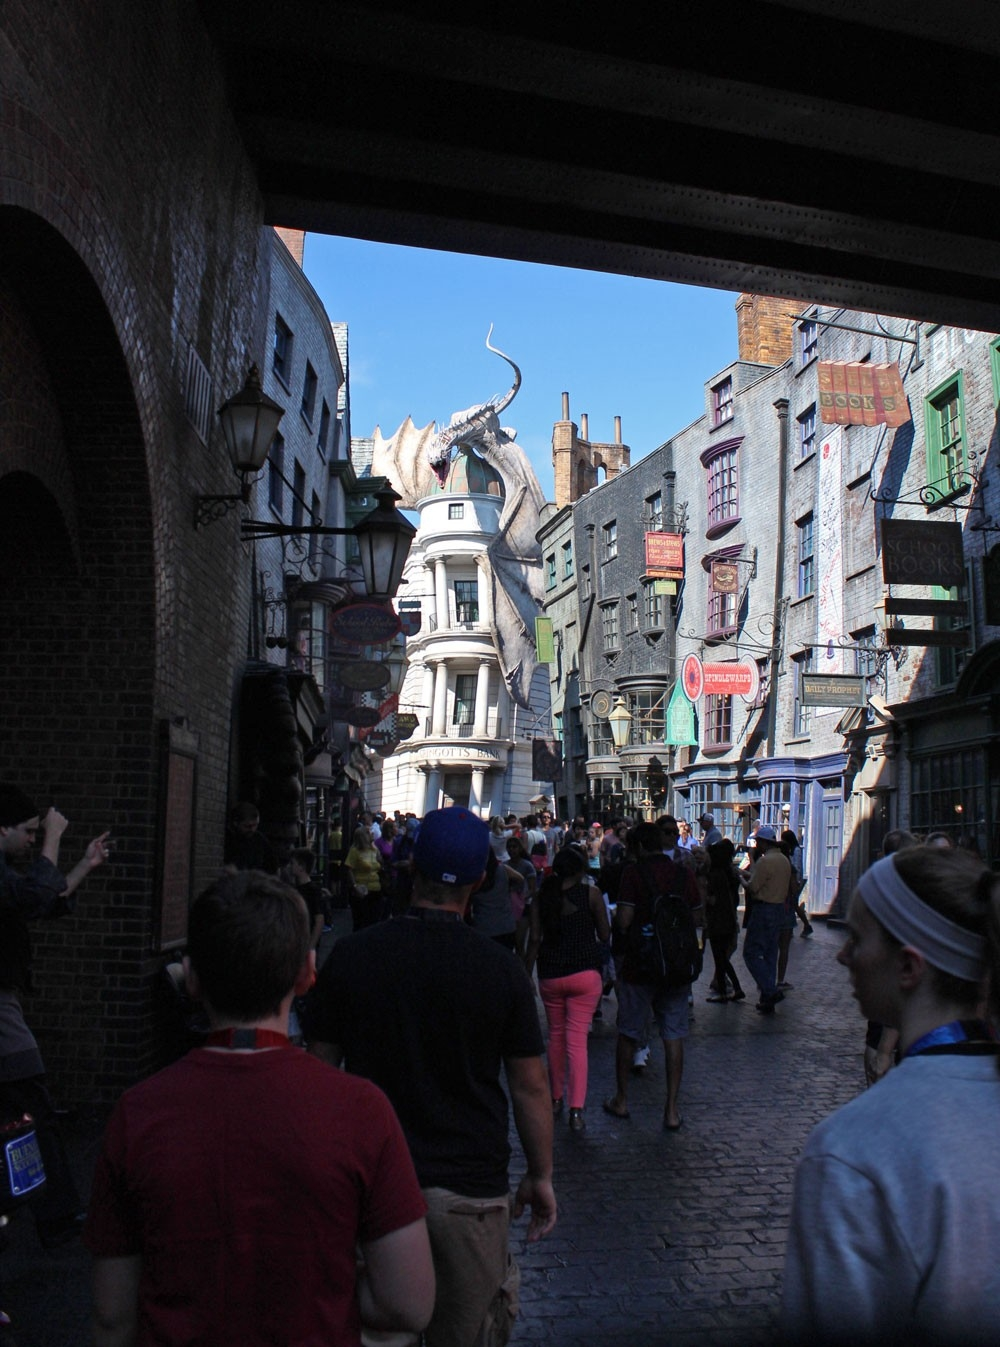 Best Time To Visit Universal Orlando In 2019 & 2020-Universal Orlando Crowd Calendar January 2020